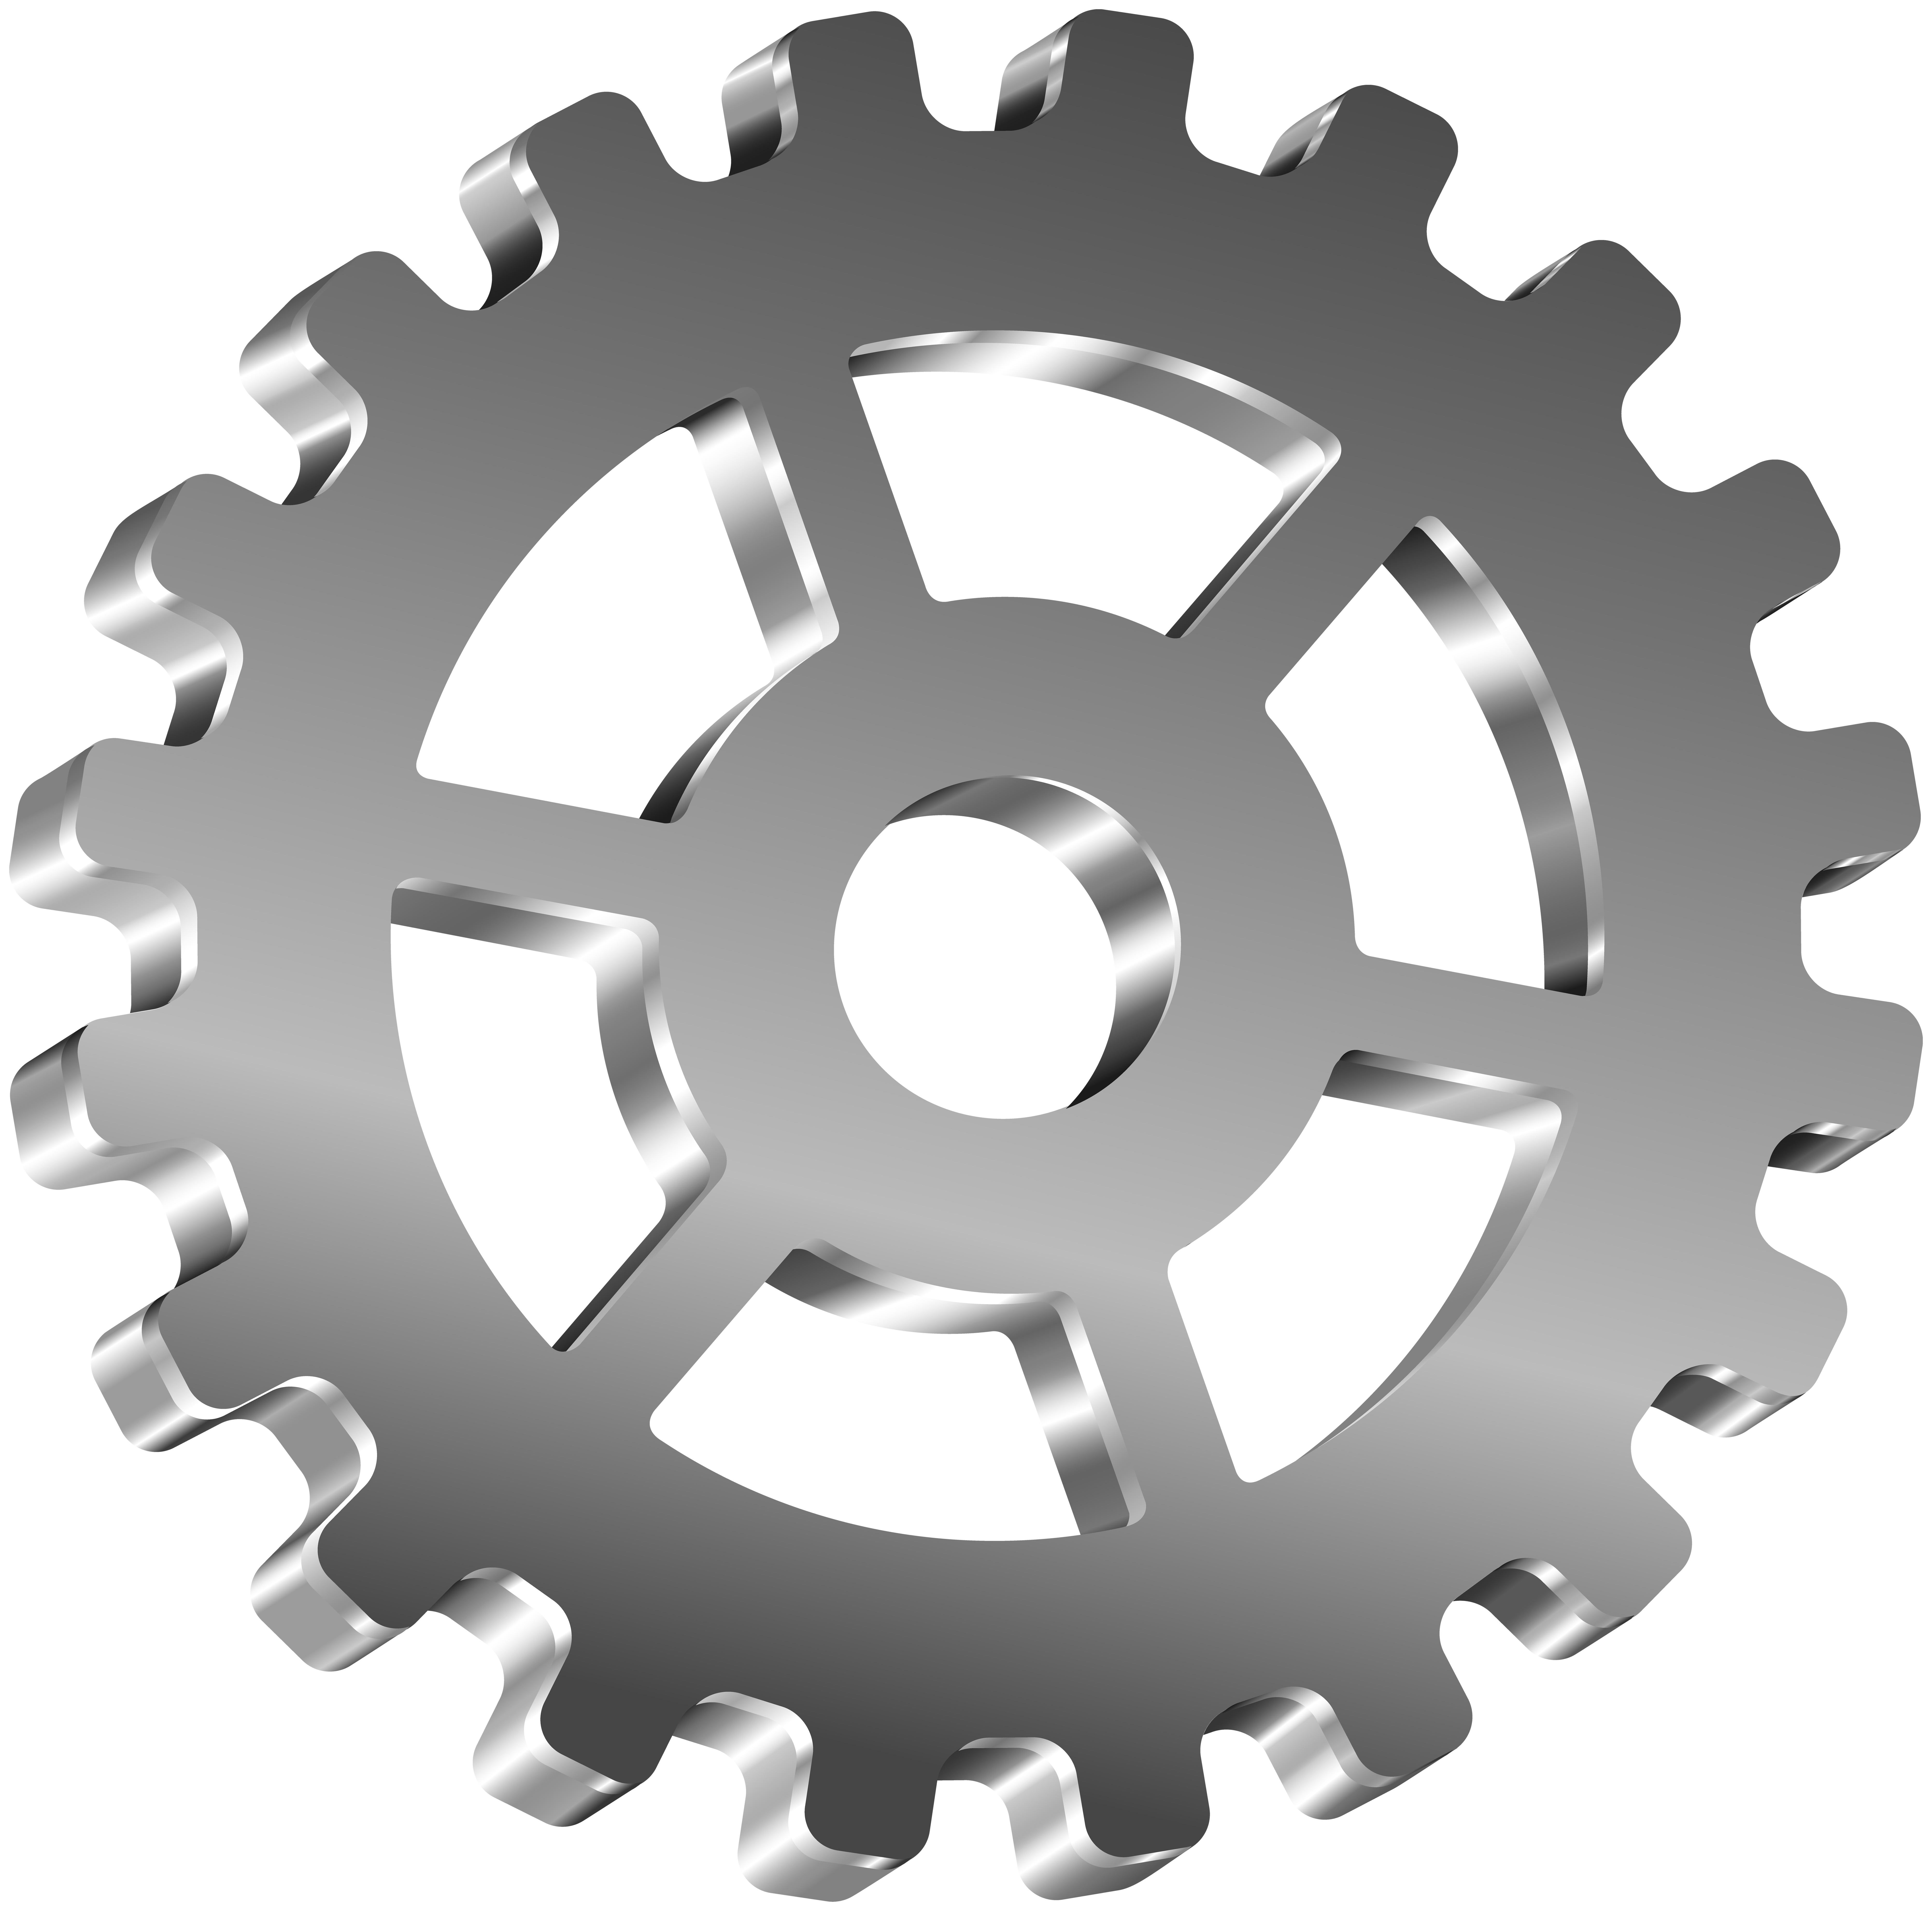 Transparent art png image. Gear clip clip black and white library